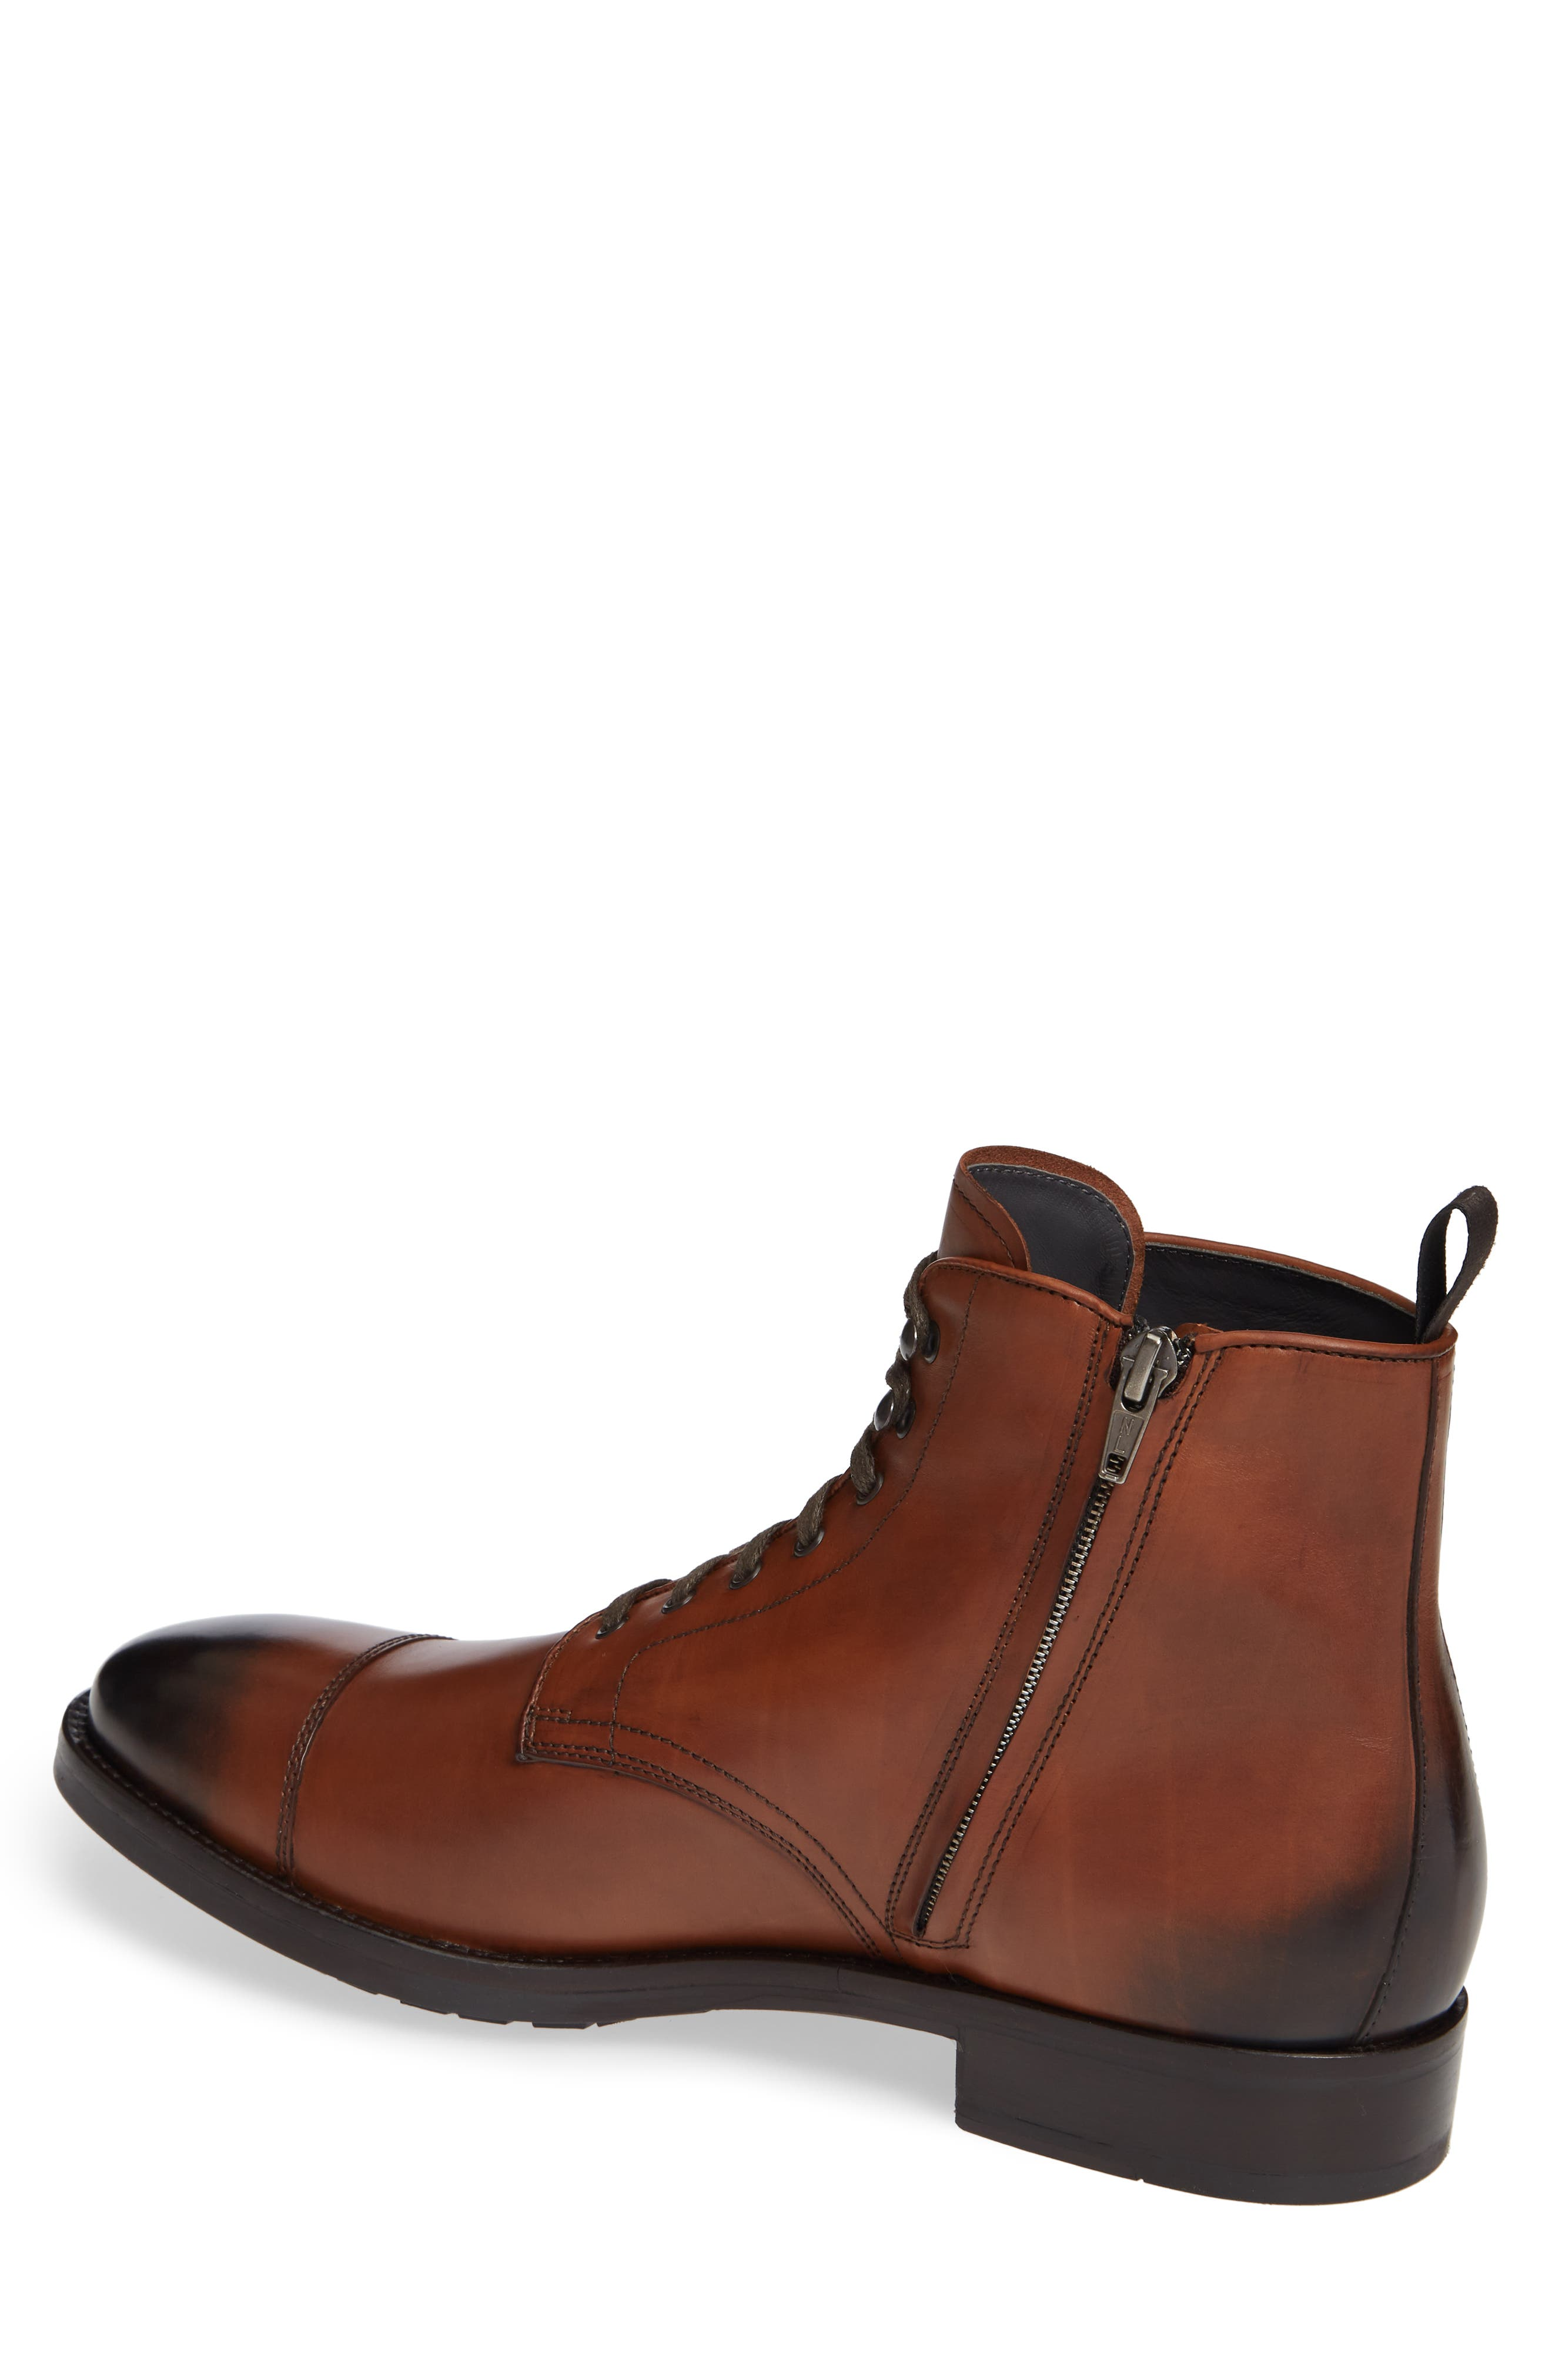 Concord Cap Toe Boot,                             Alternate thumbnail 2, color,                             BROWN LEATHER